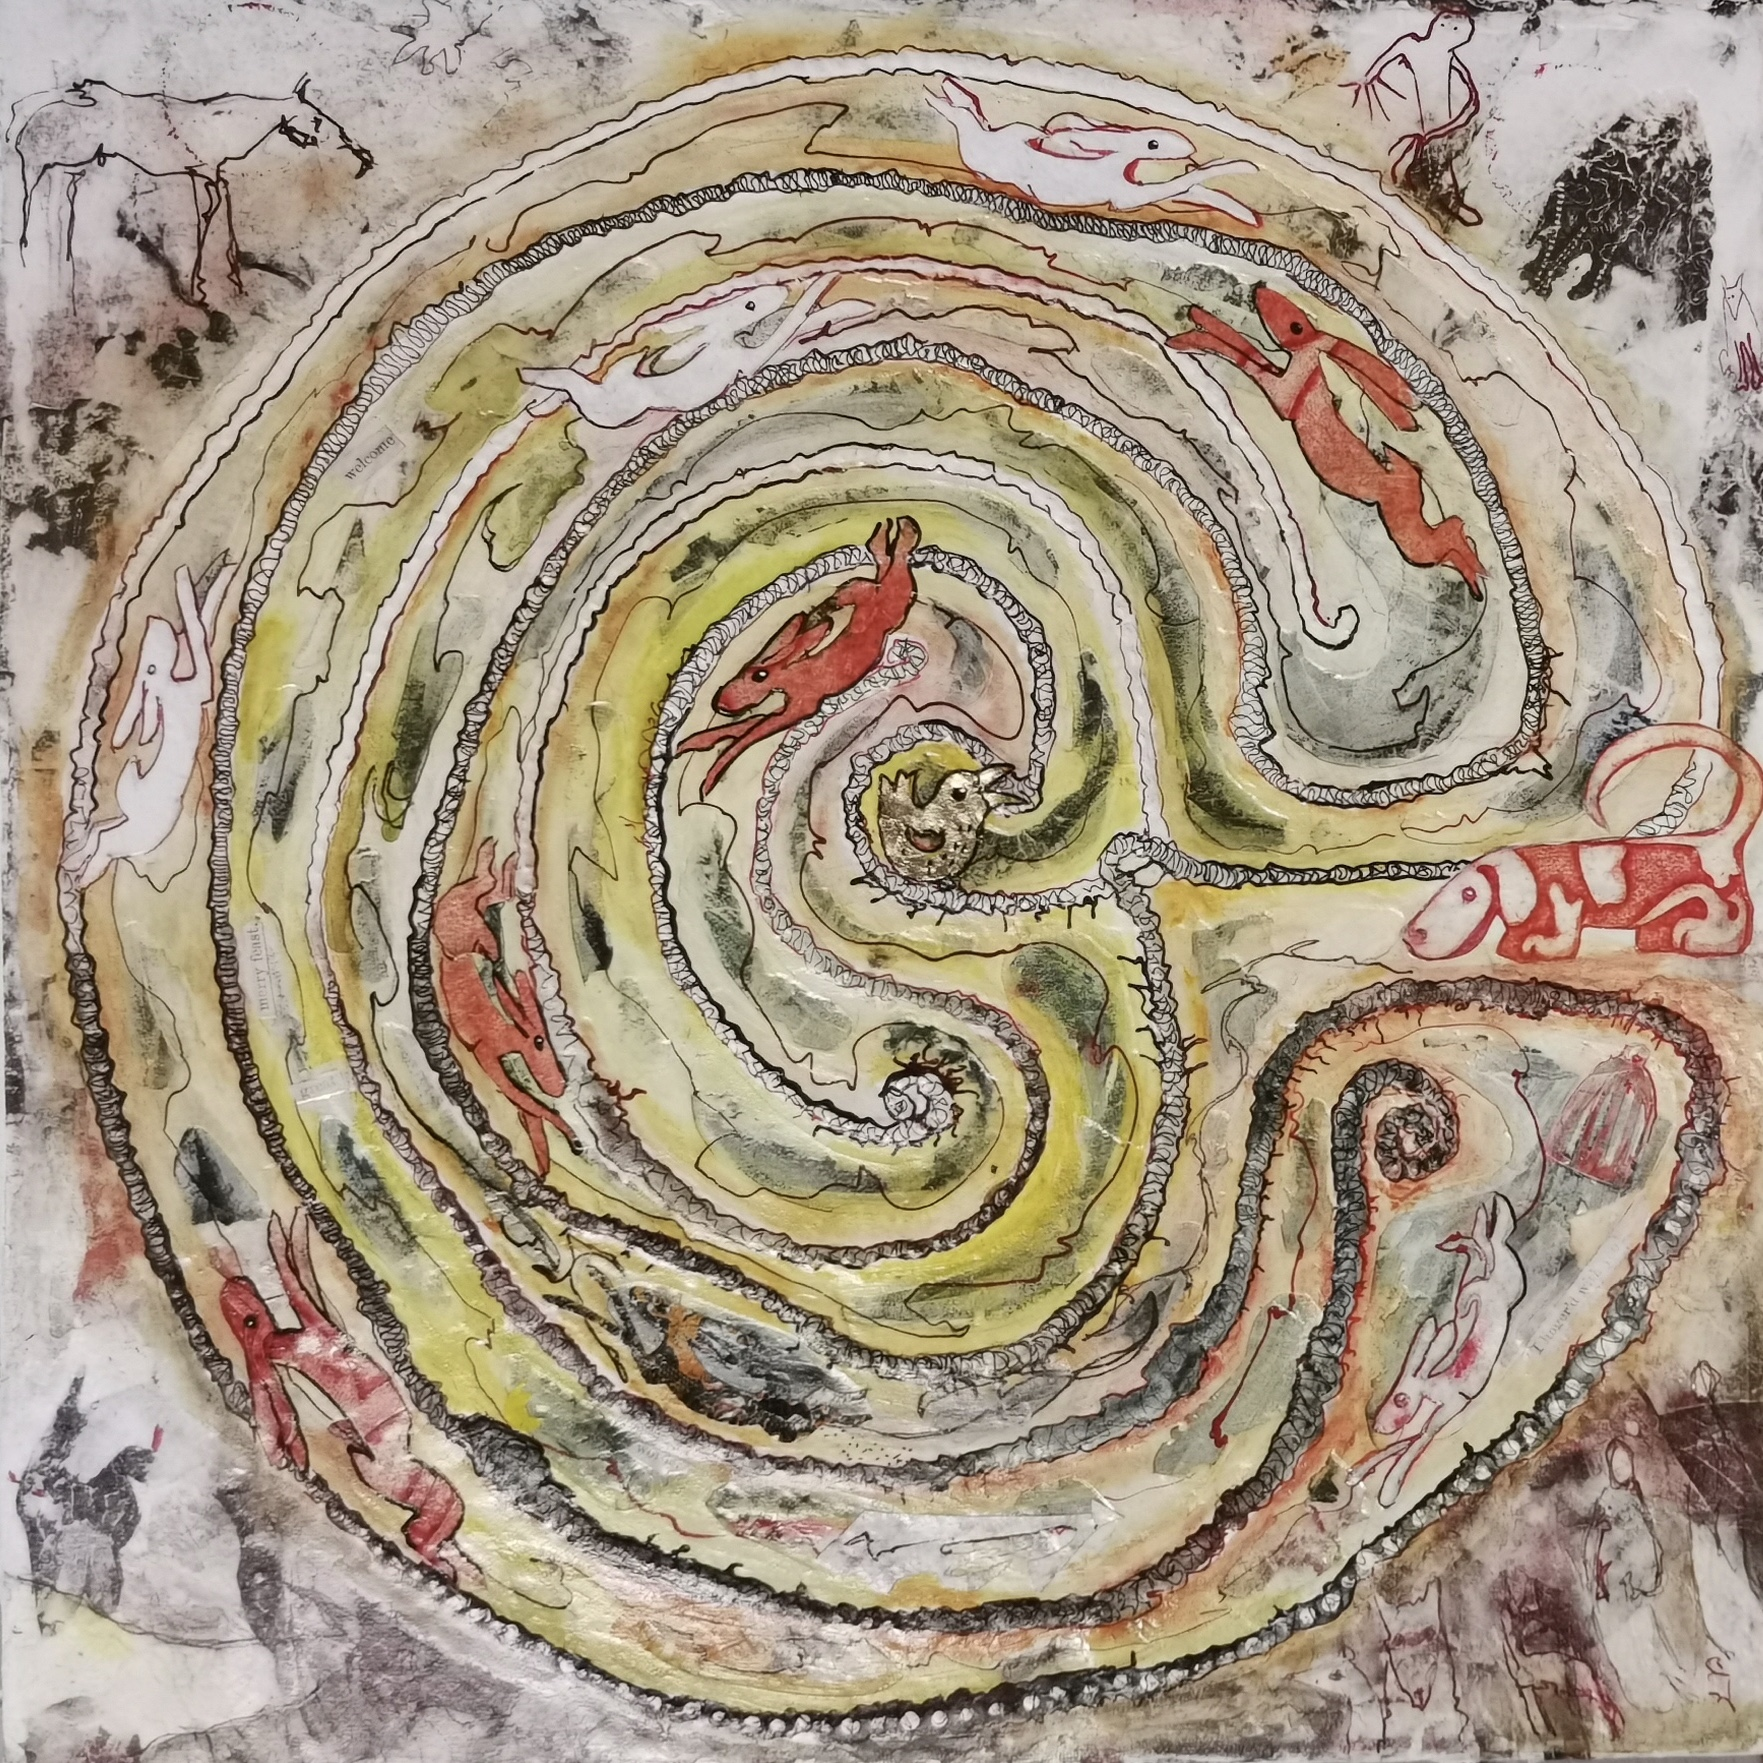 Judith Harrison, 'Circle Series II – Seeking the Golden Bird.' Mixed Media. Size: 43 x 43 cm. £250